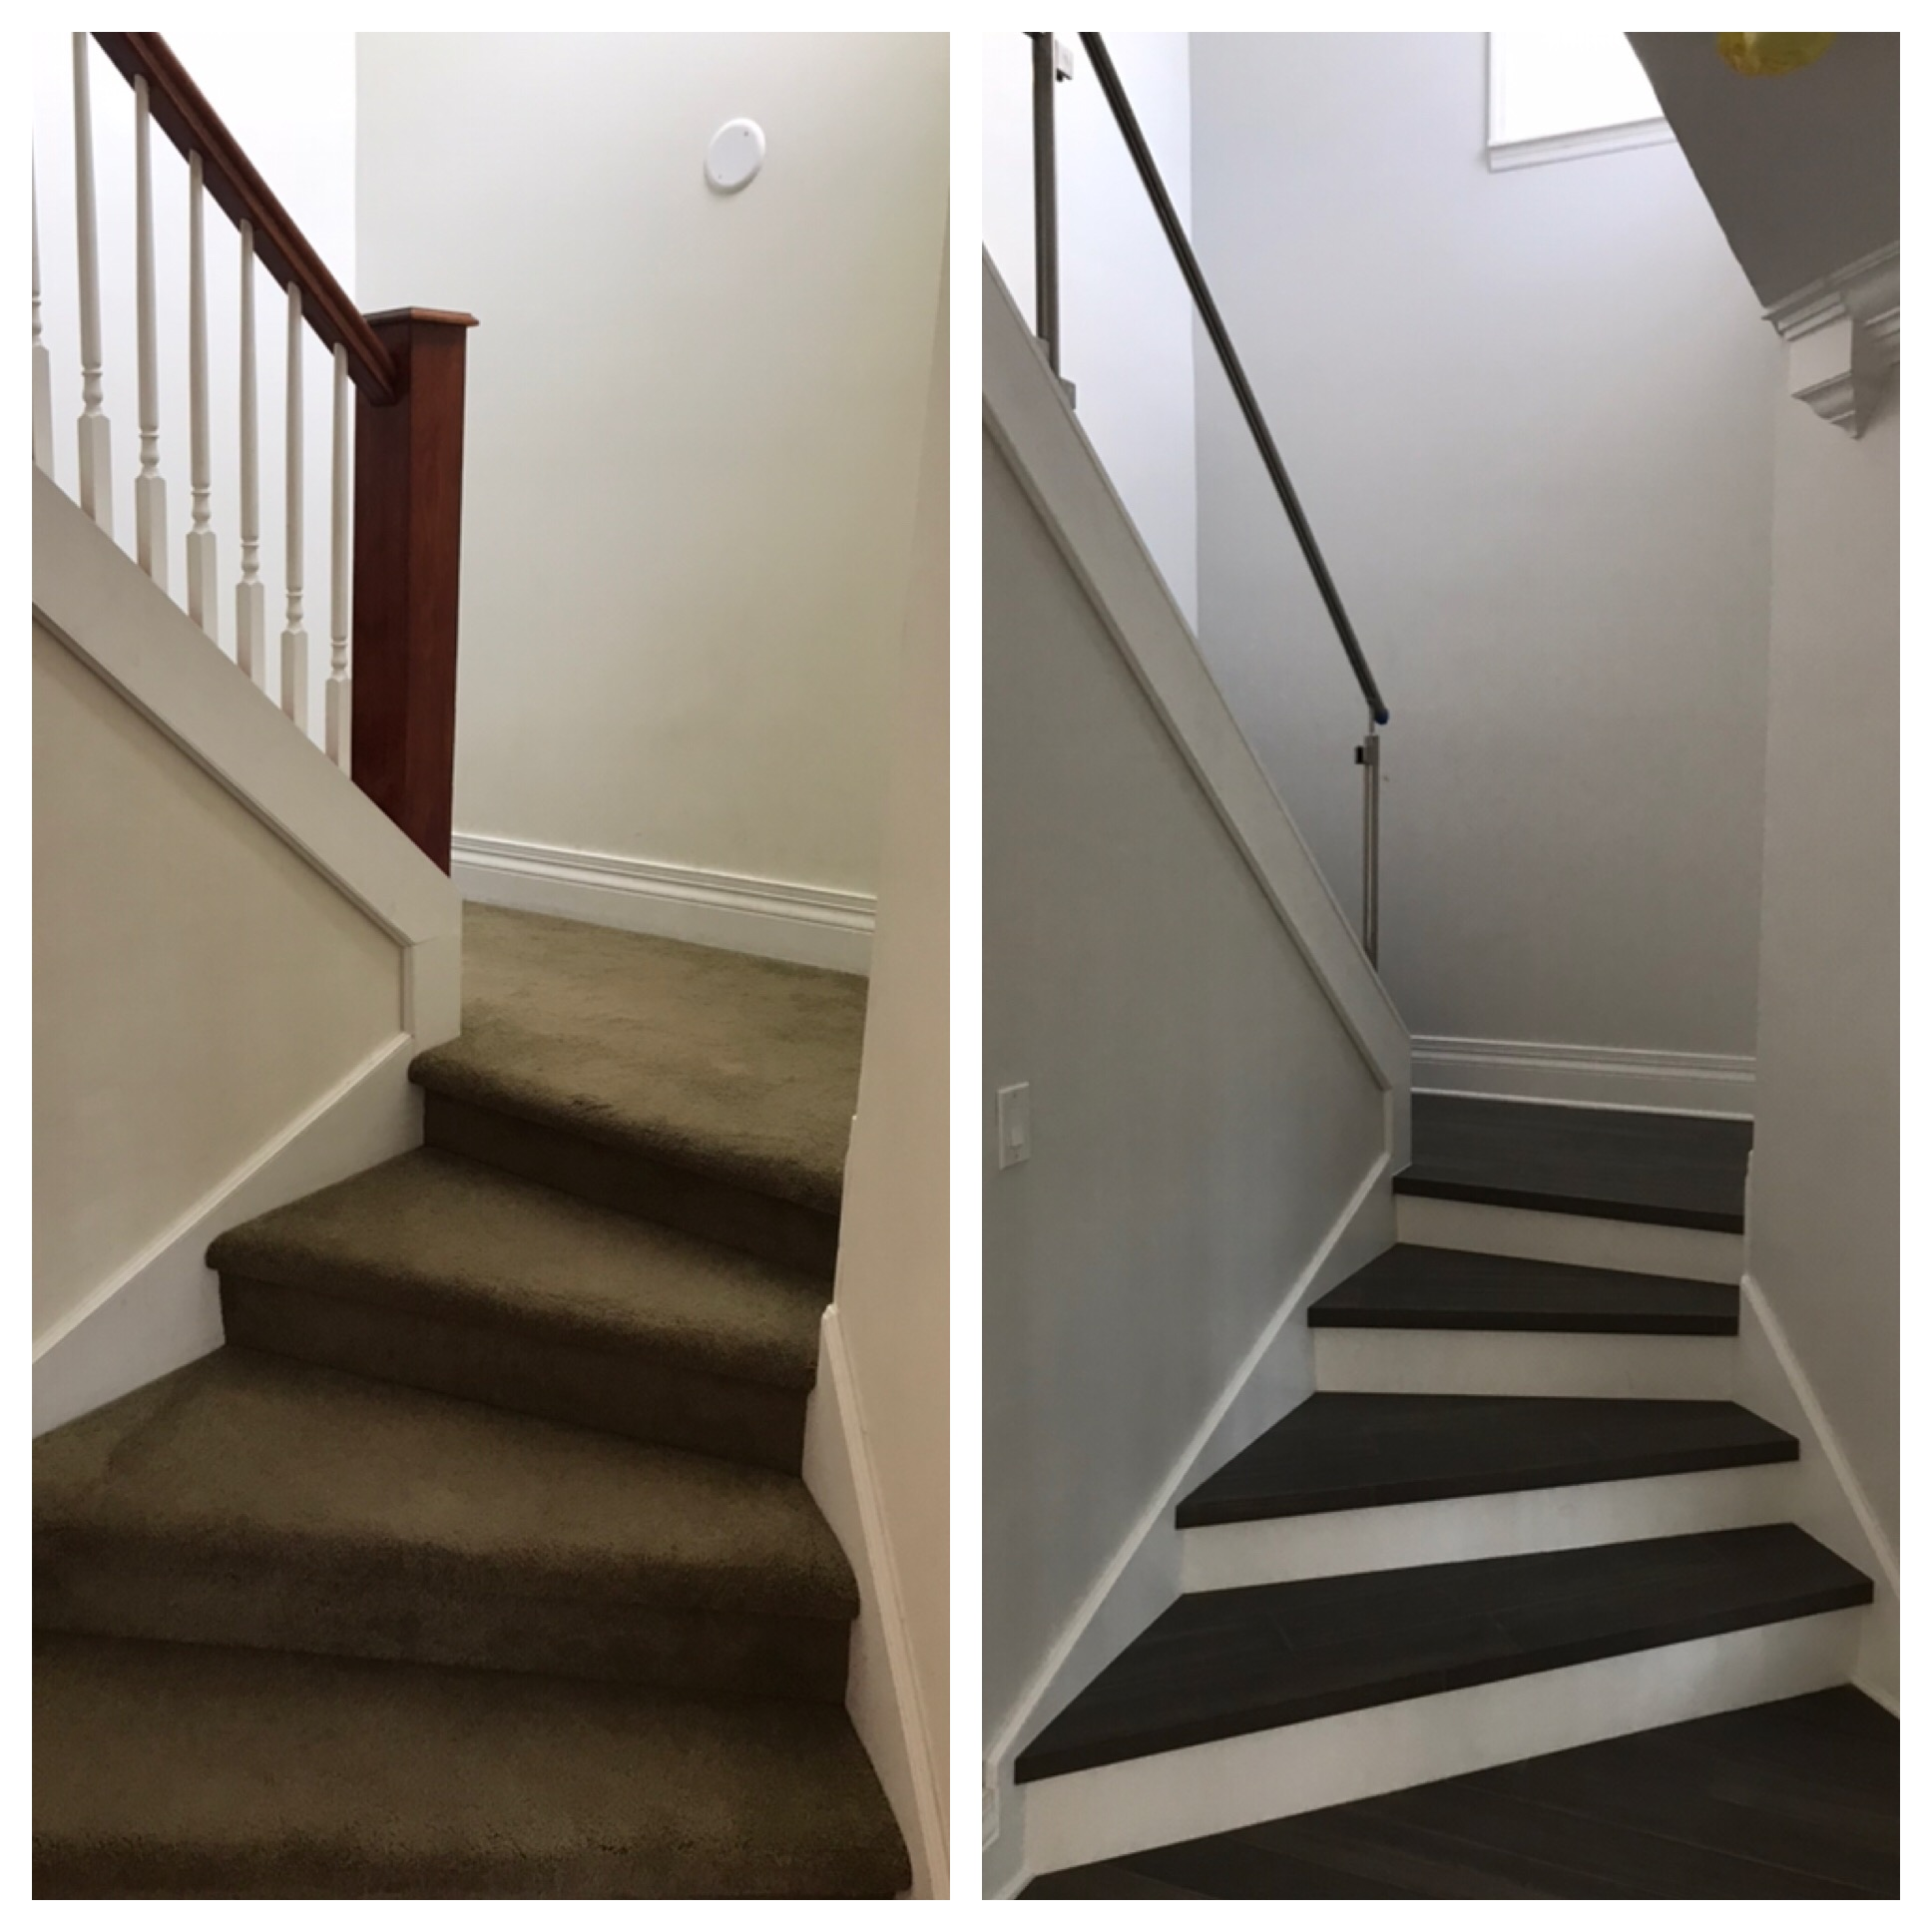 sheffield_construction_snider_project_before_after01.JPG